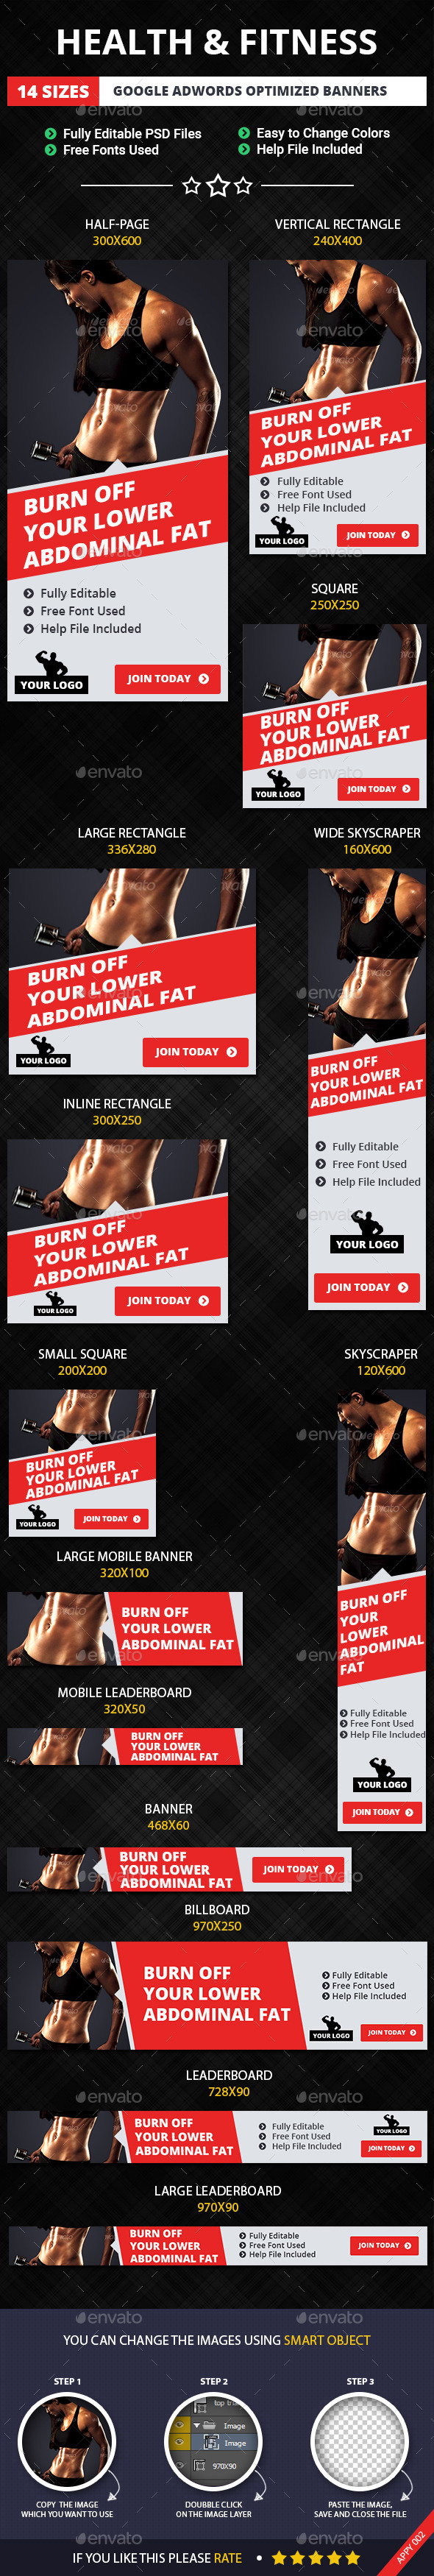 GraphicRiver Health & Fitness Web Banners 11426393